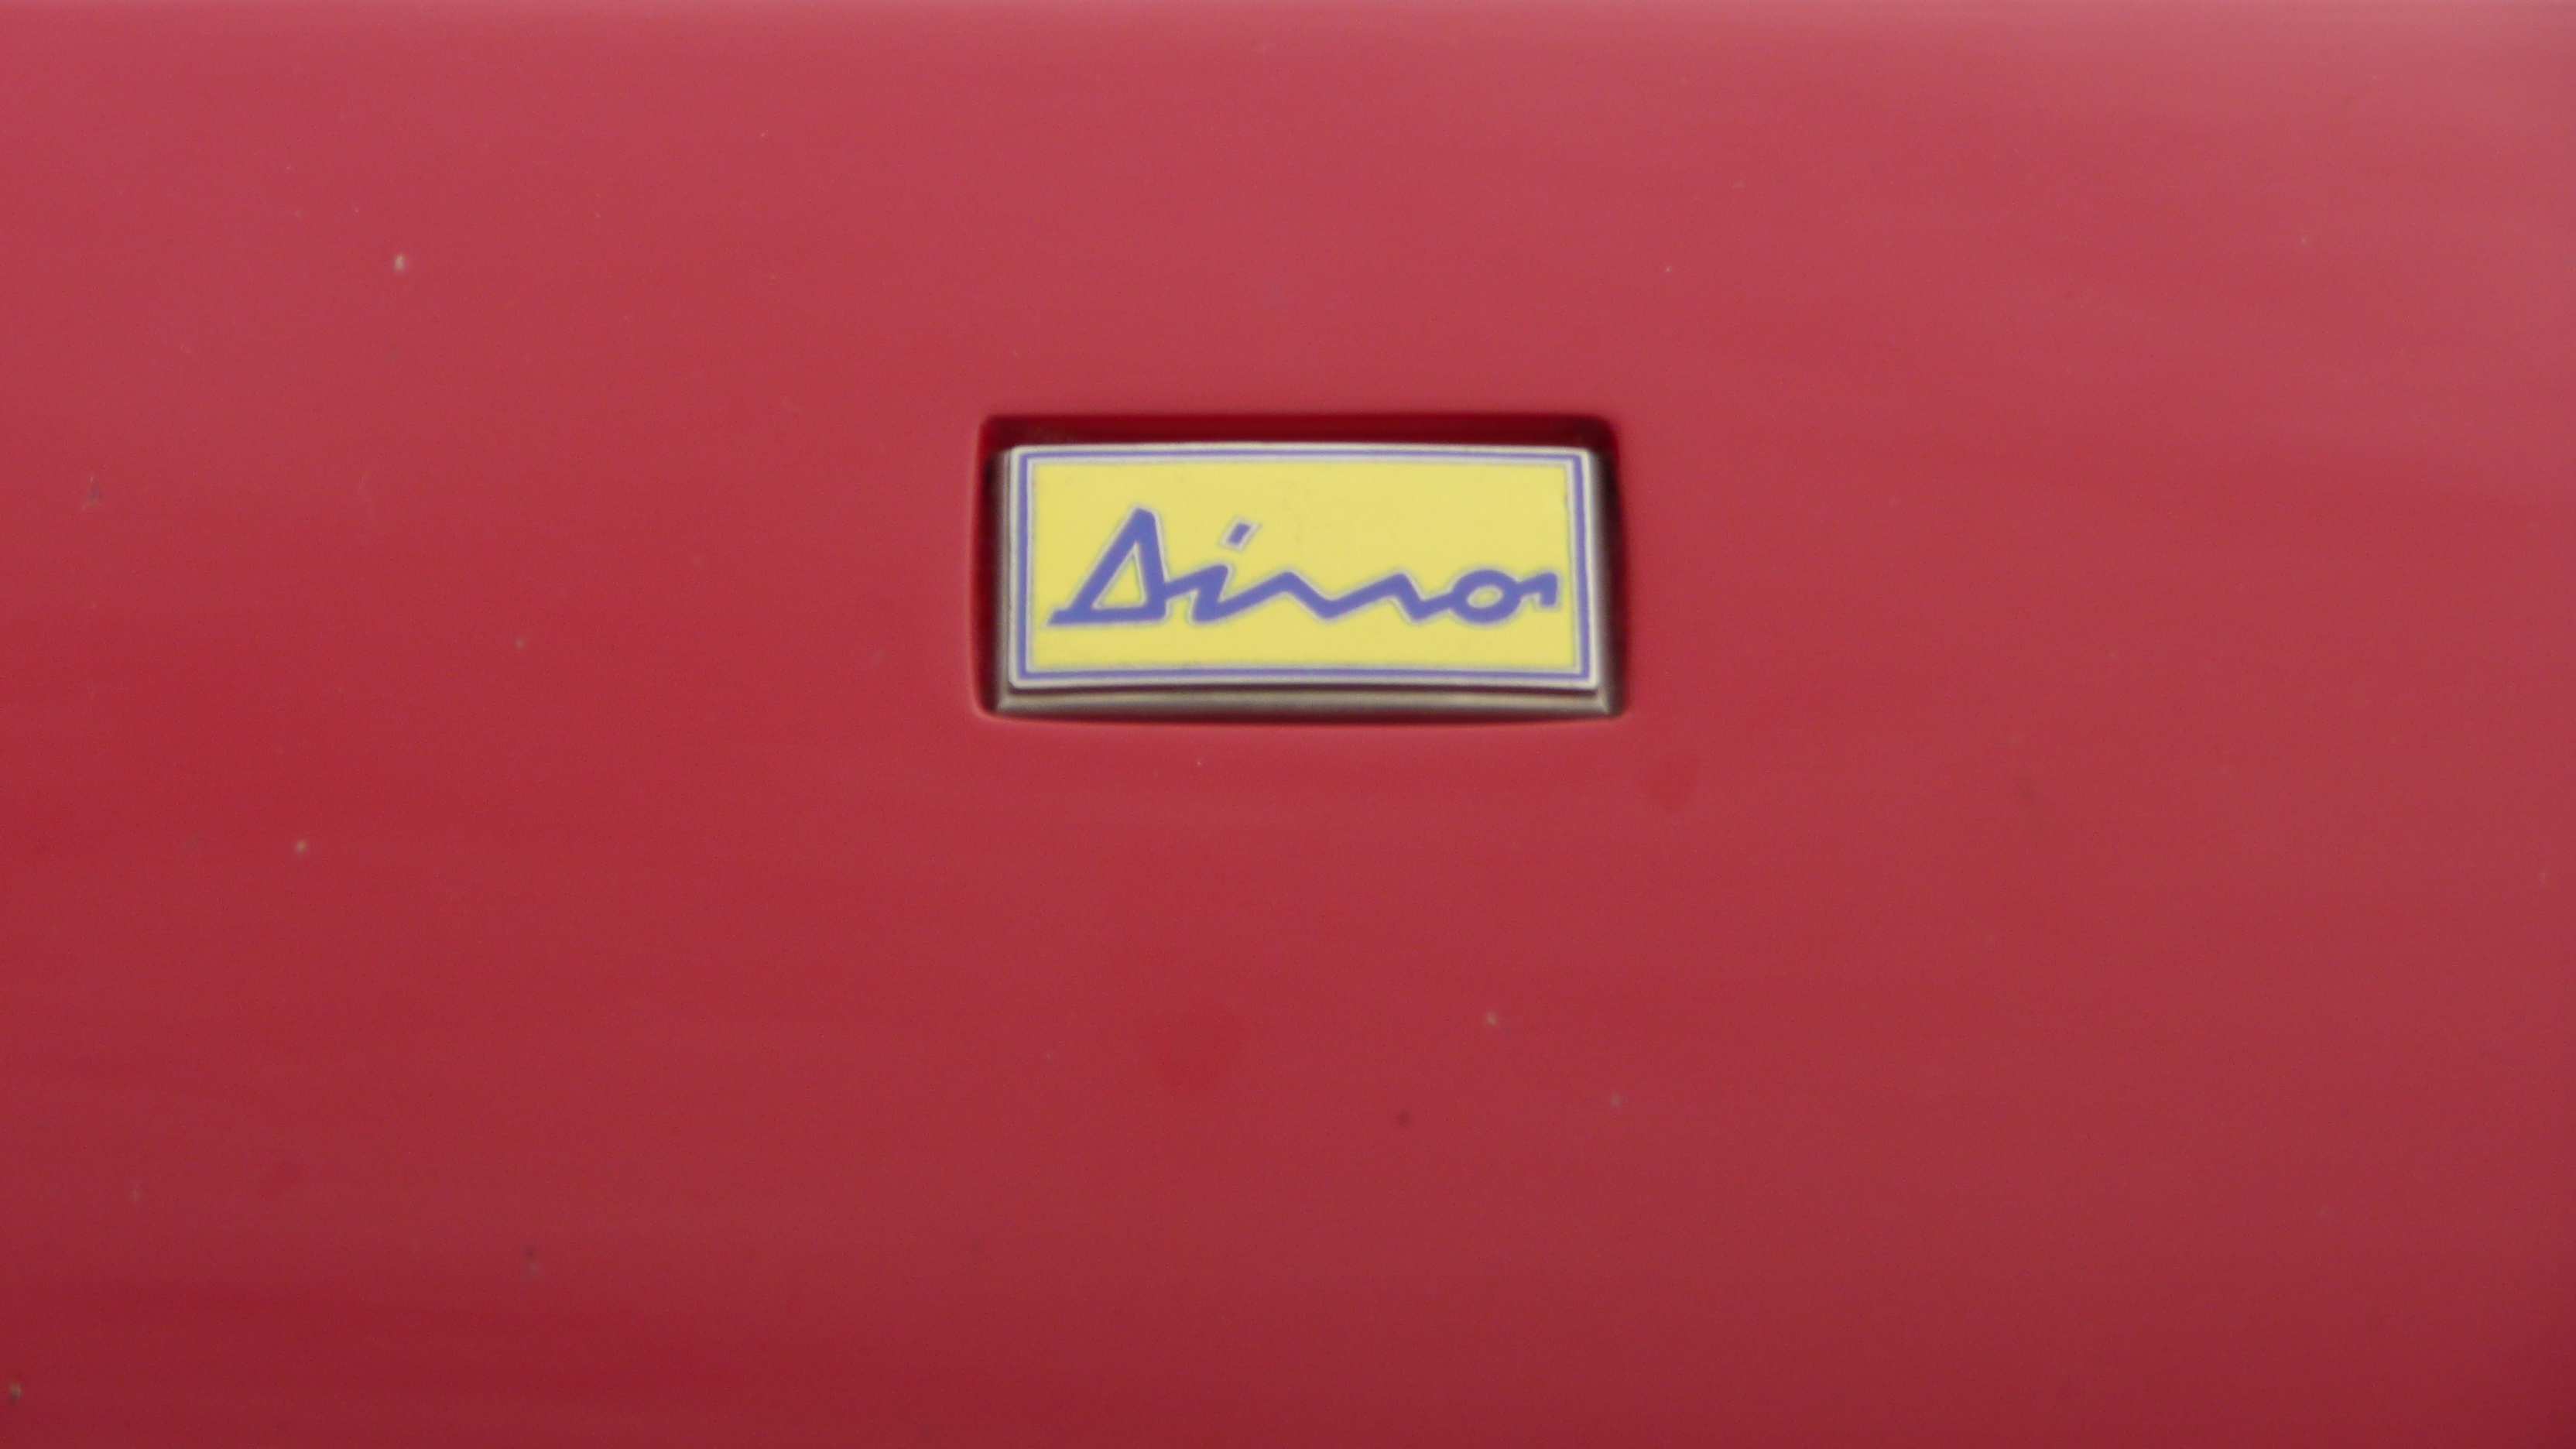 ferrari_dino_badge_3